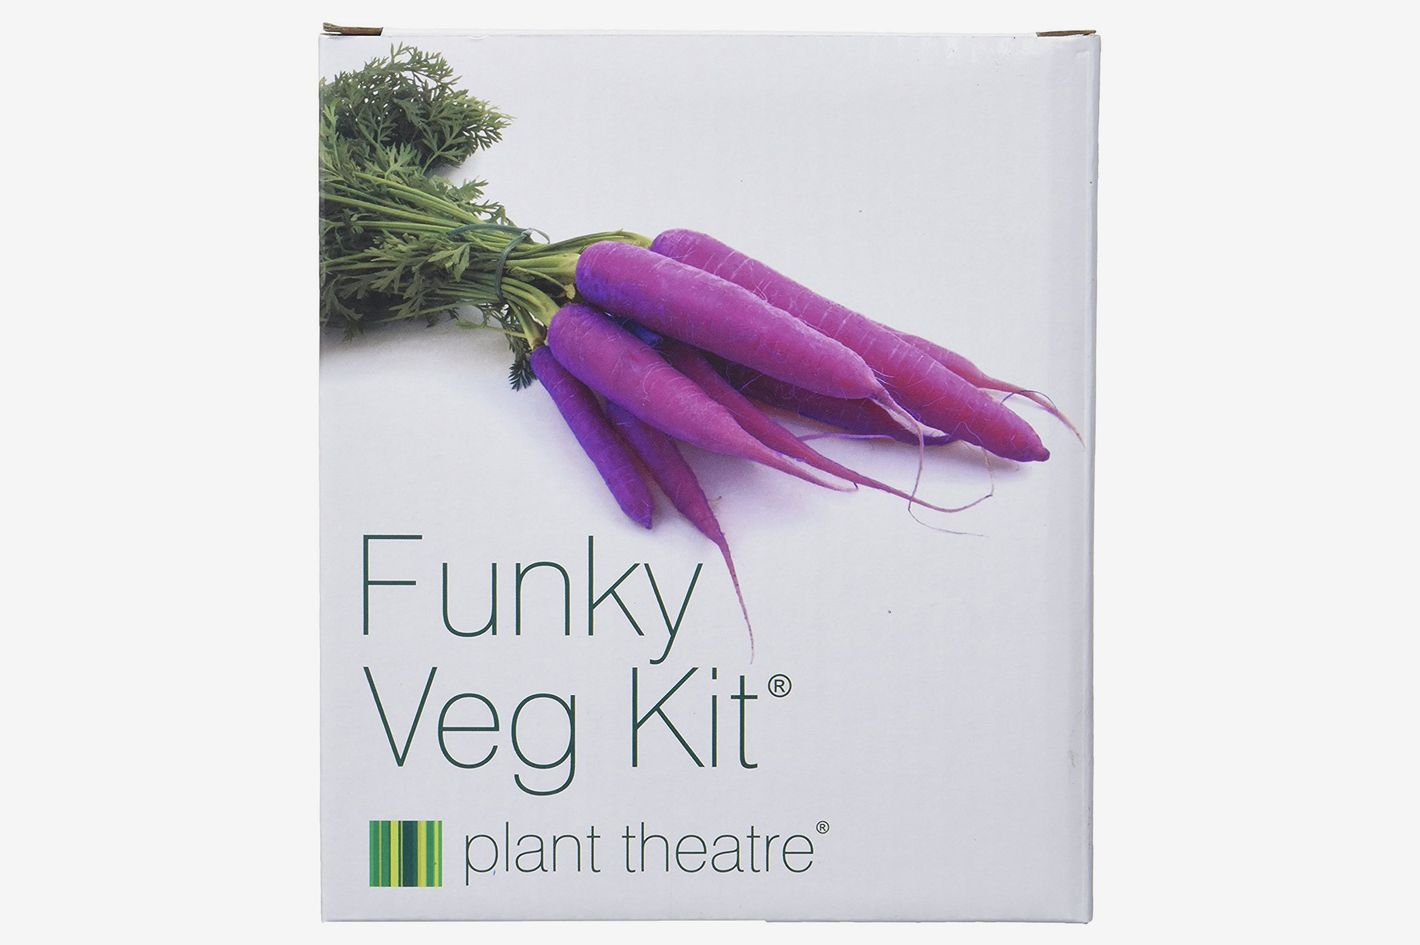 Plant Theatre Funky Veg Kit Gift Box